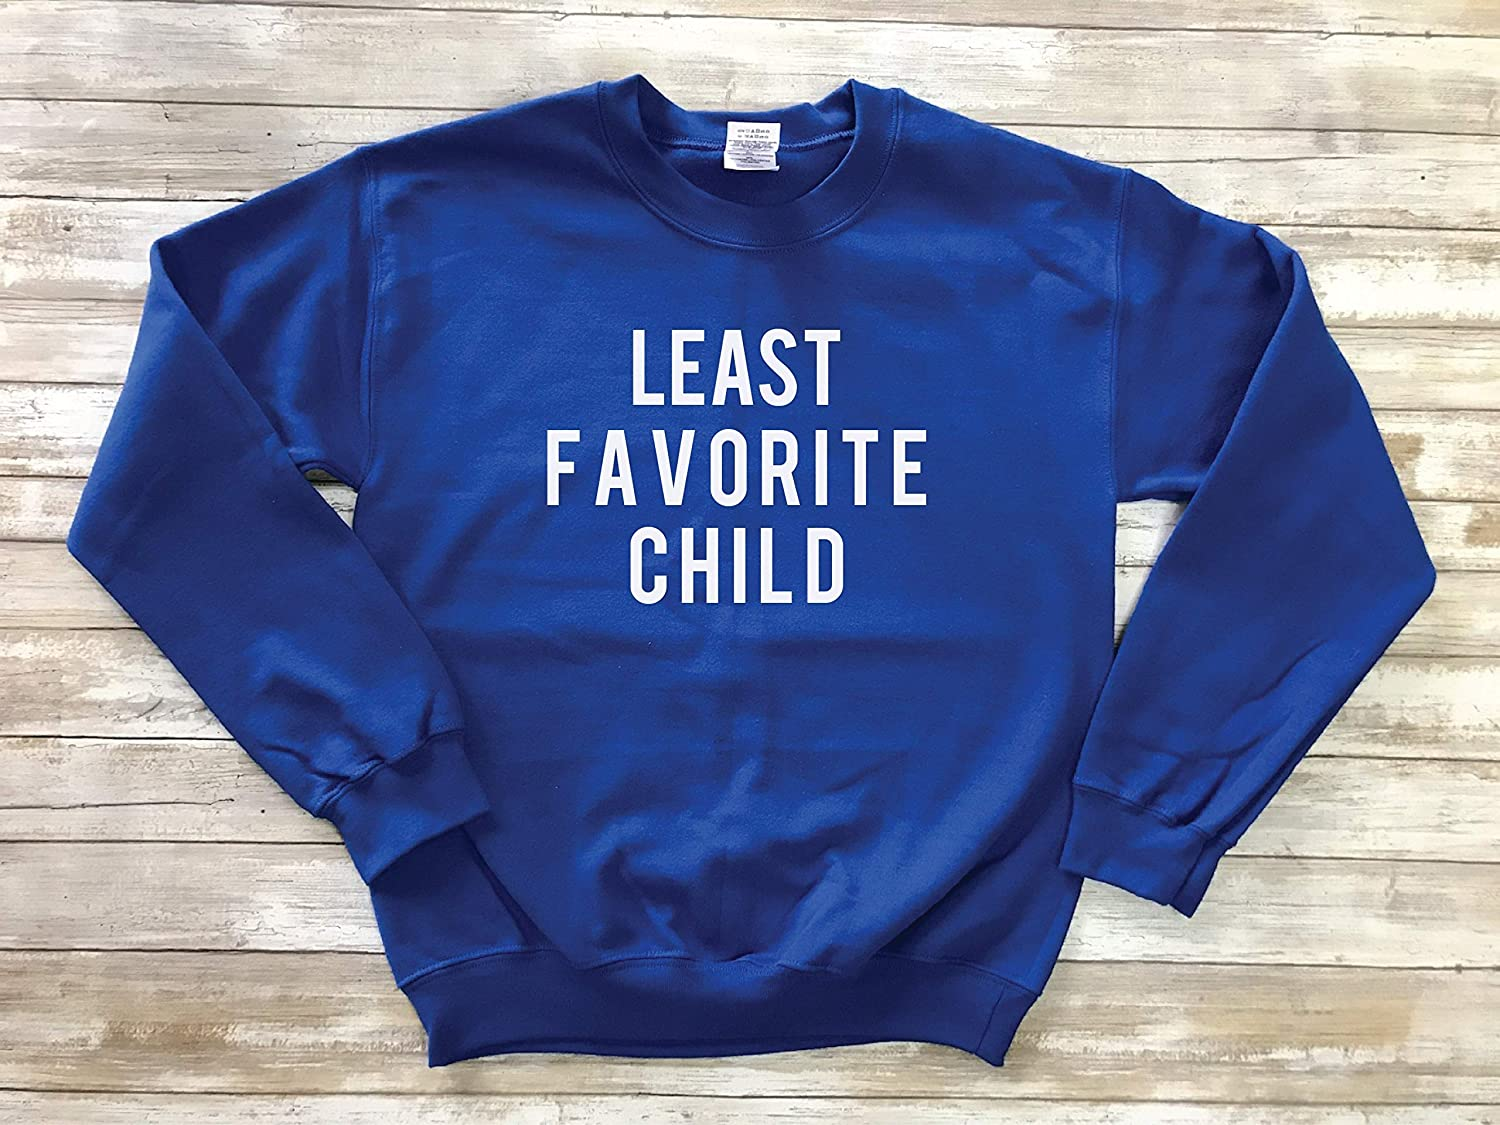 Amazon Com Least Favorite Child Sweatshirt Moms Favorite Sweatshirt Dads Favorite Sweater Funny Sibling Gift Sister Shirt Brother Gift Funny Kid Outfit Handmade